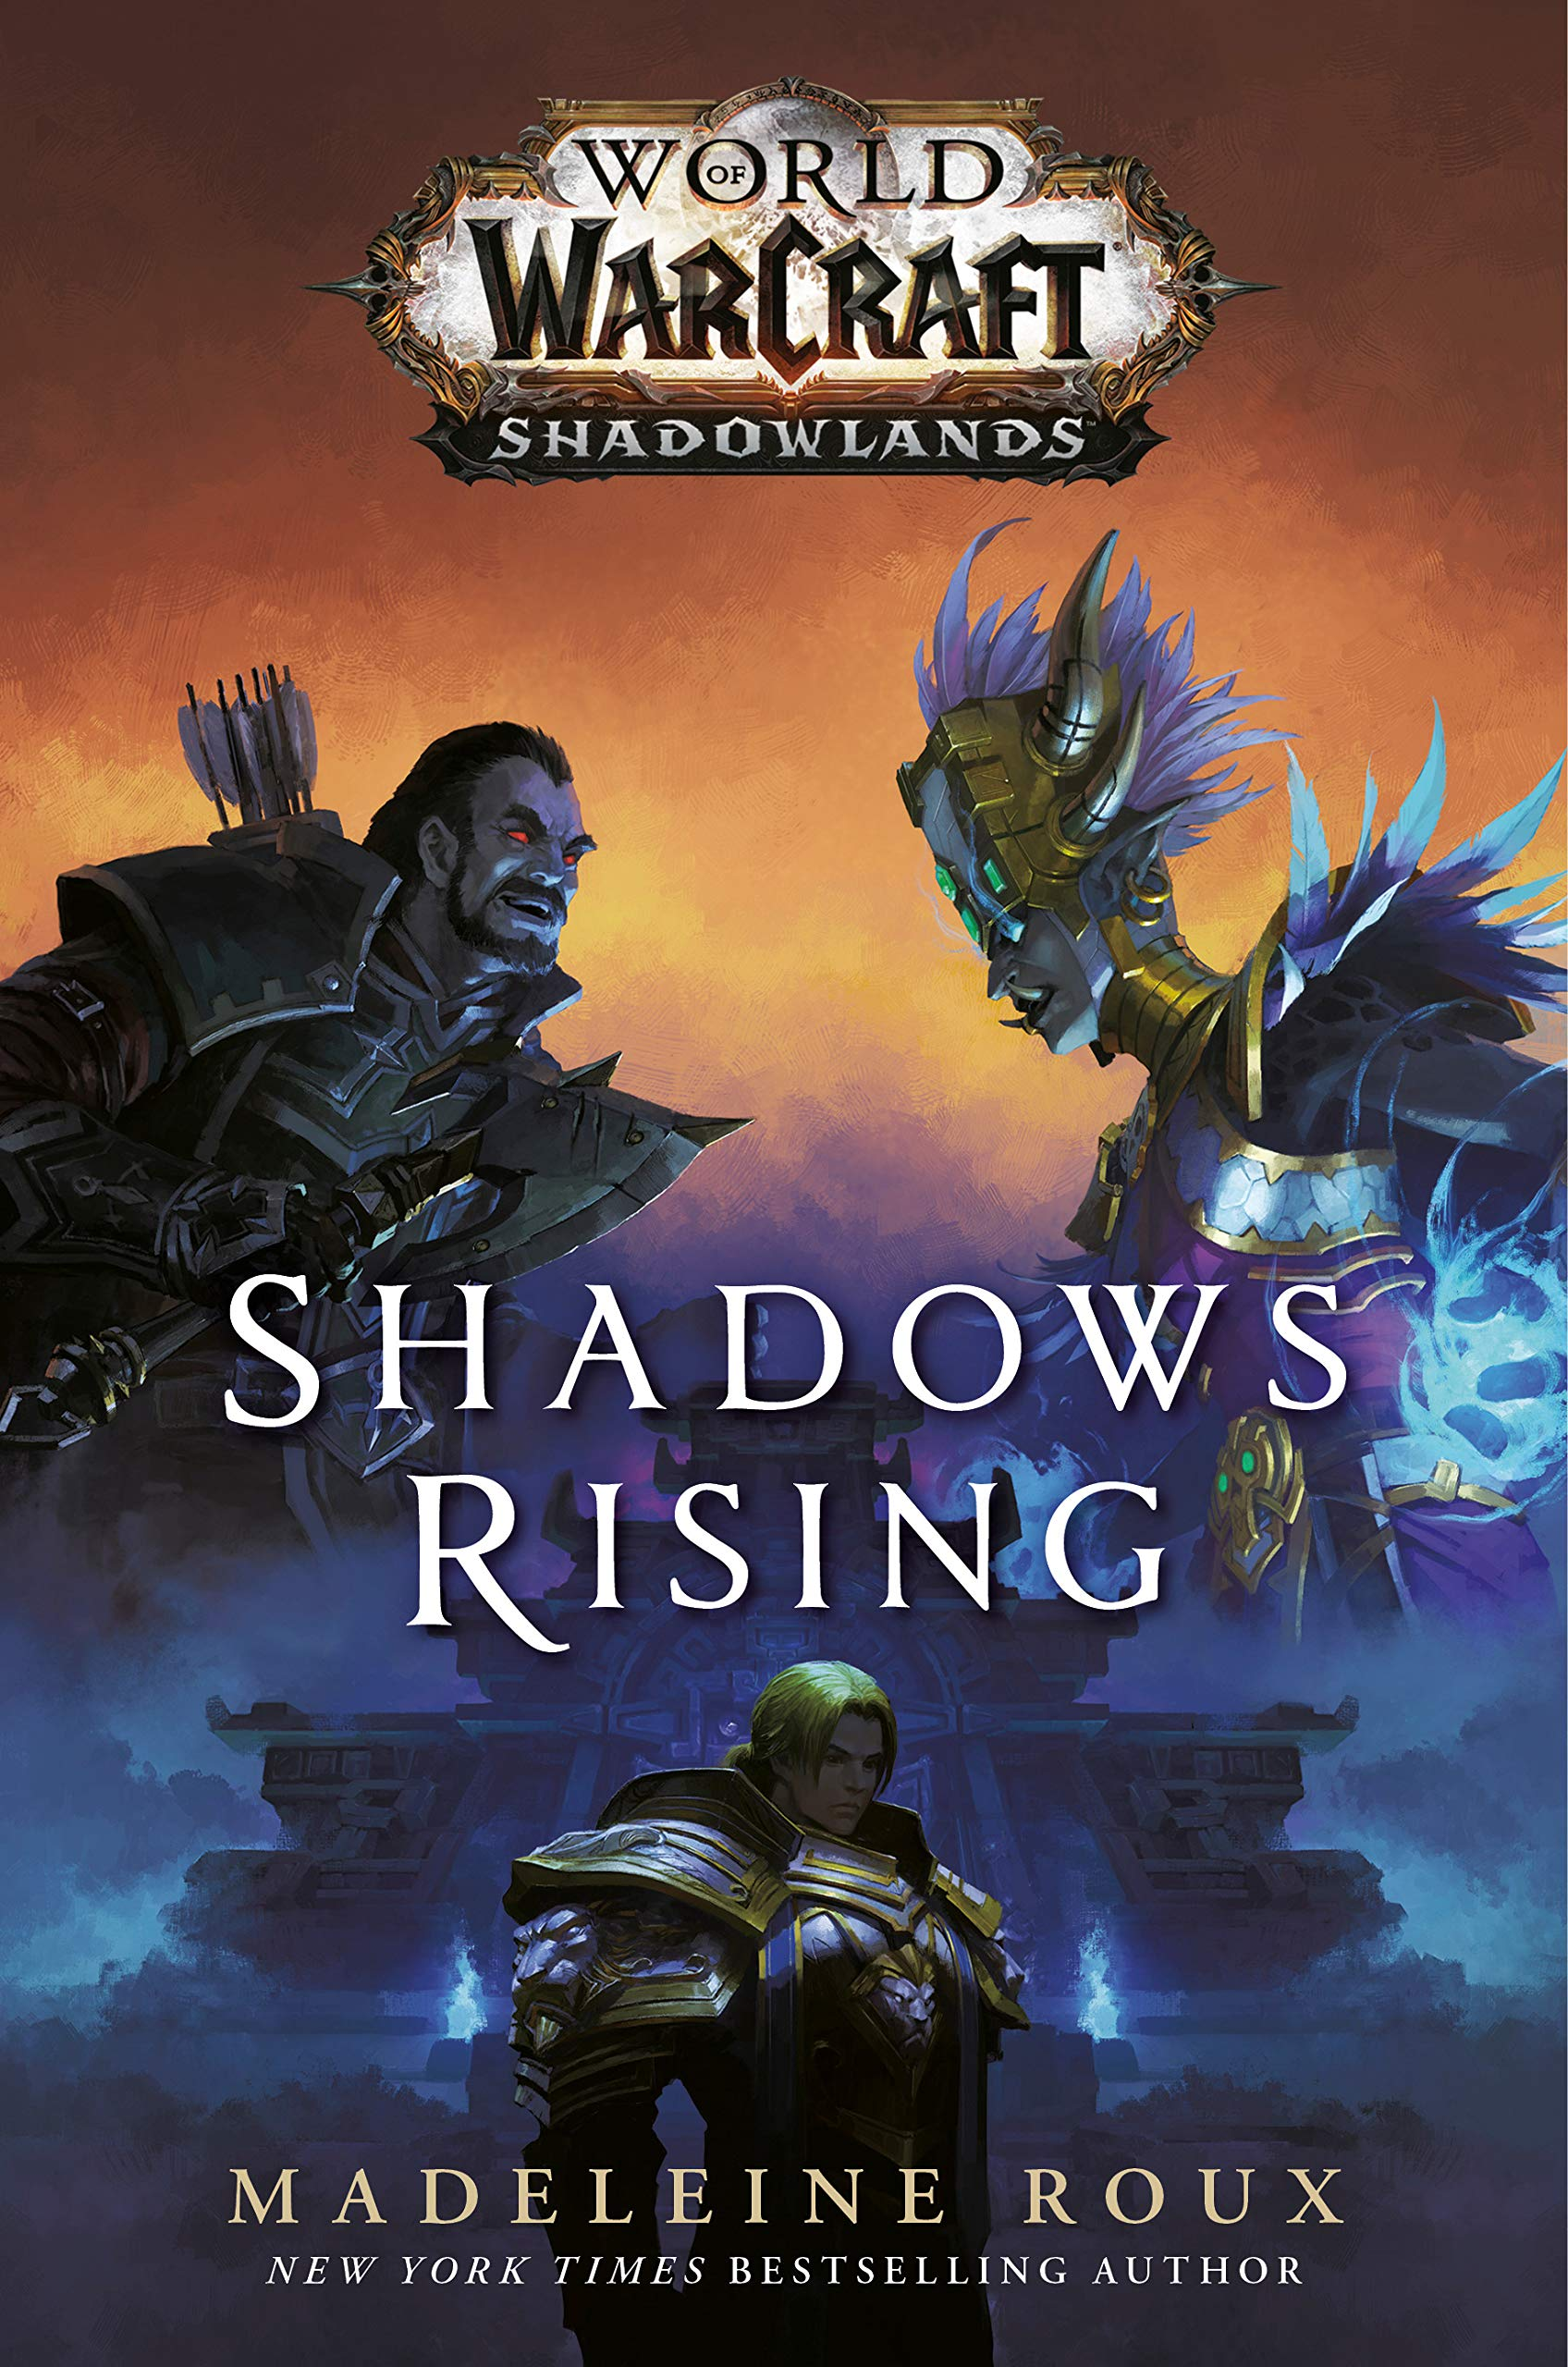 World of Warcraft: Shadows Rising cover